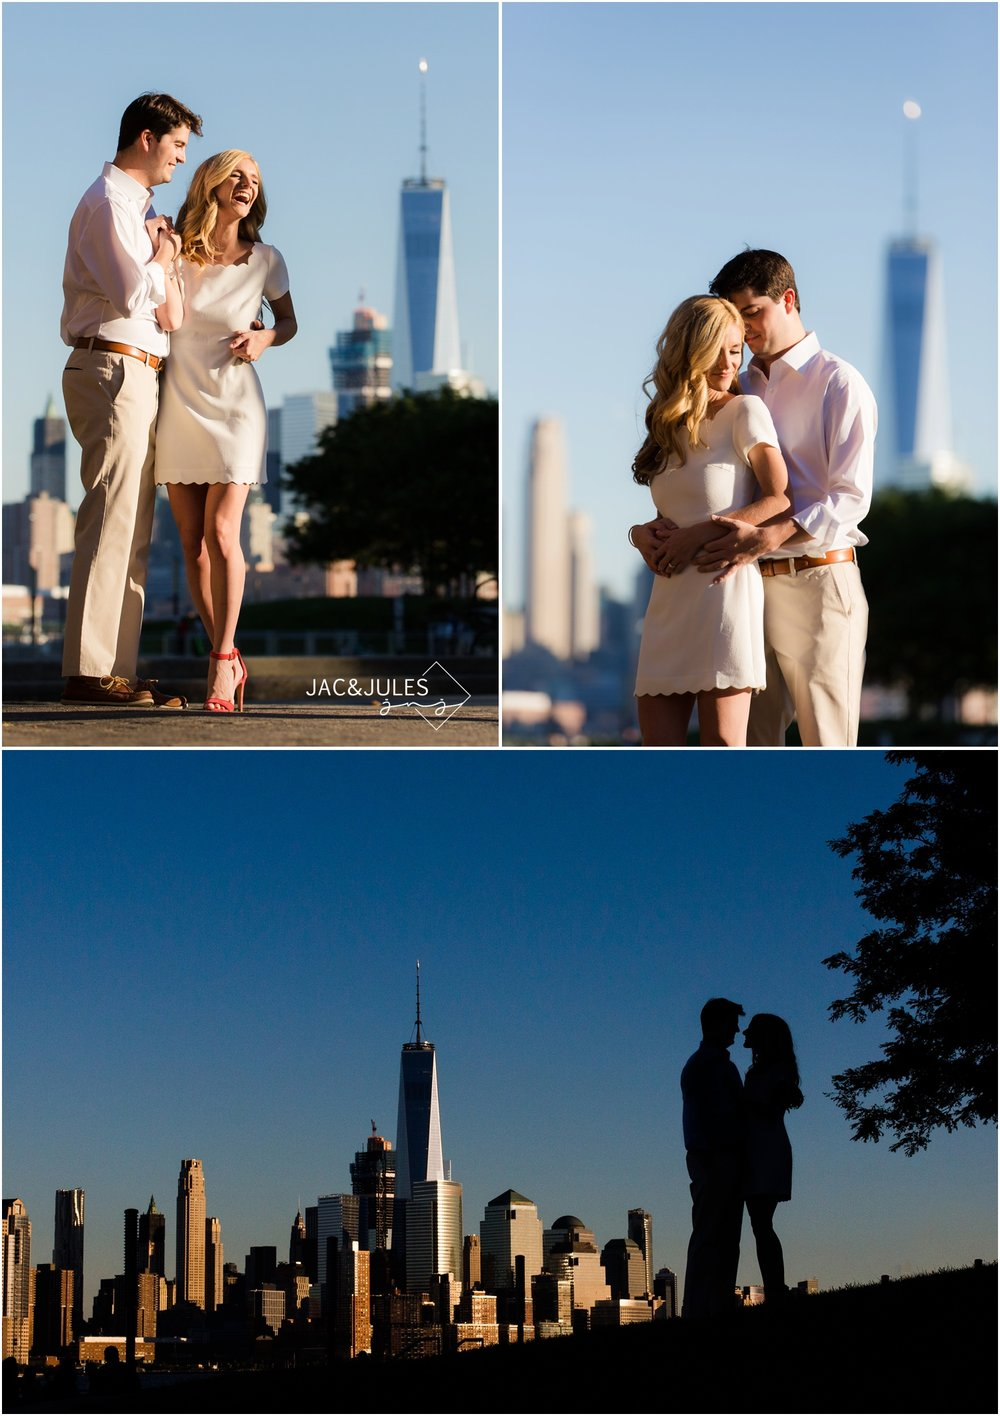 sunny engagement photos with New York city skyline in hoboken, nj.